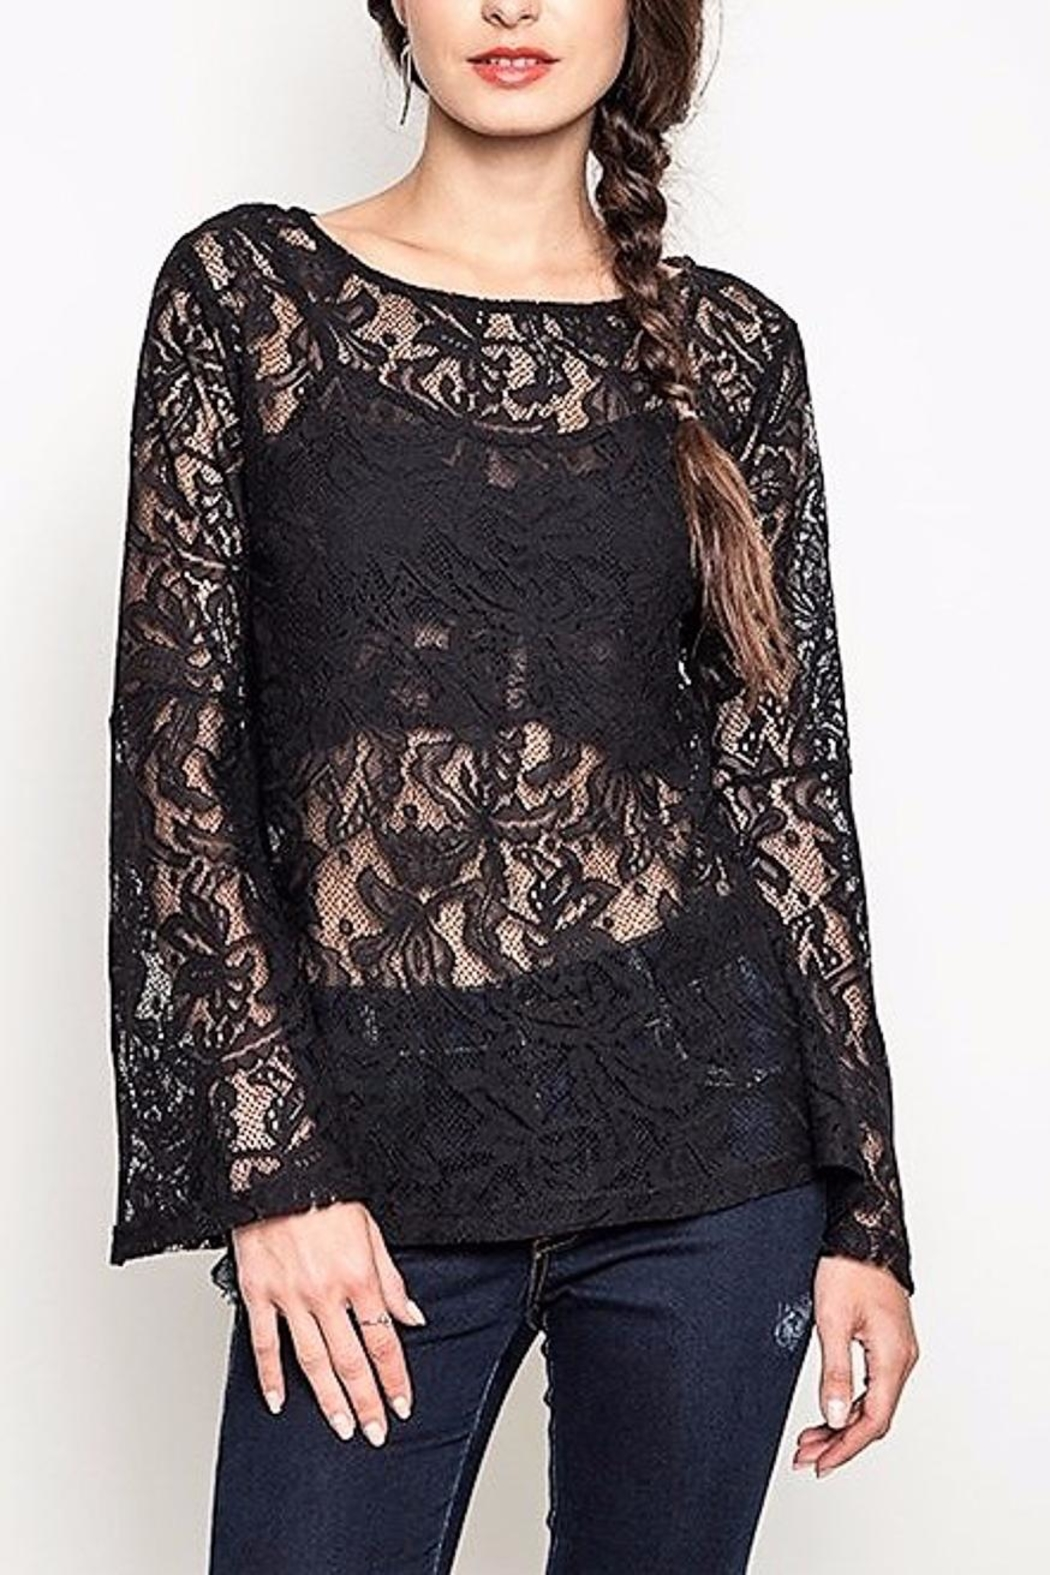 People Outfitter Black Lace Top - Main Image